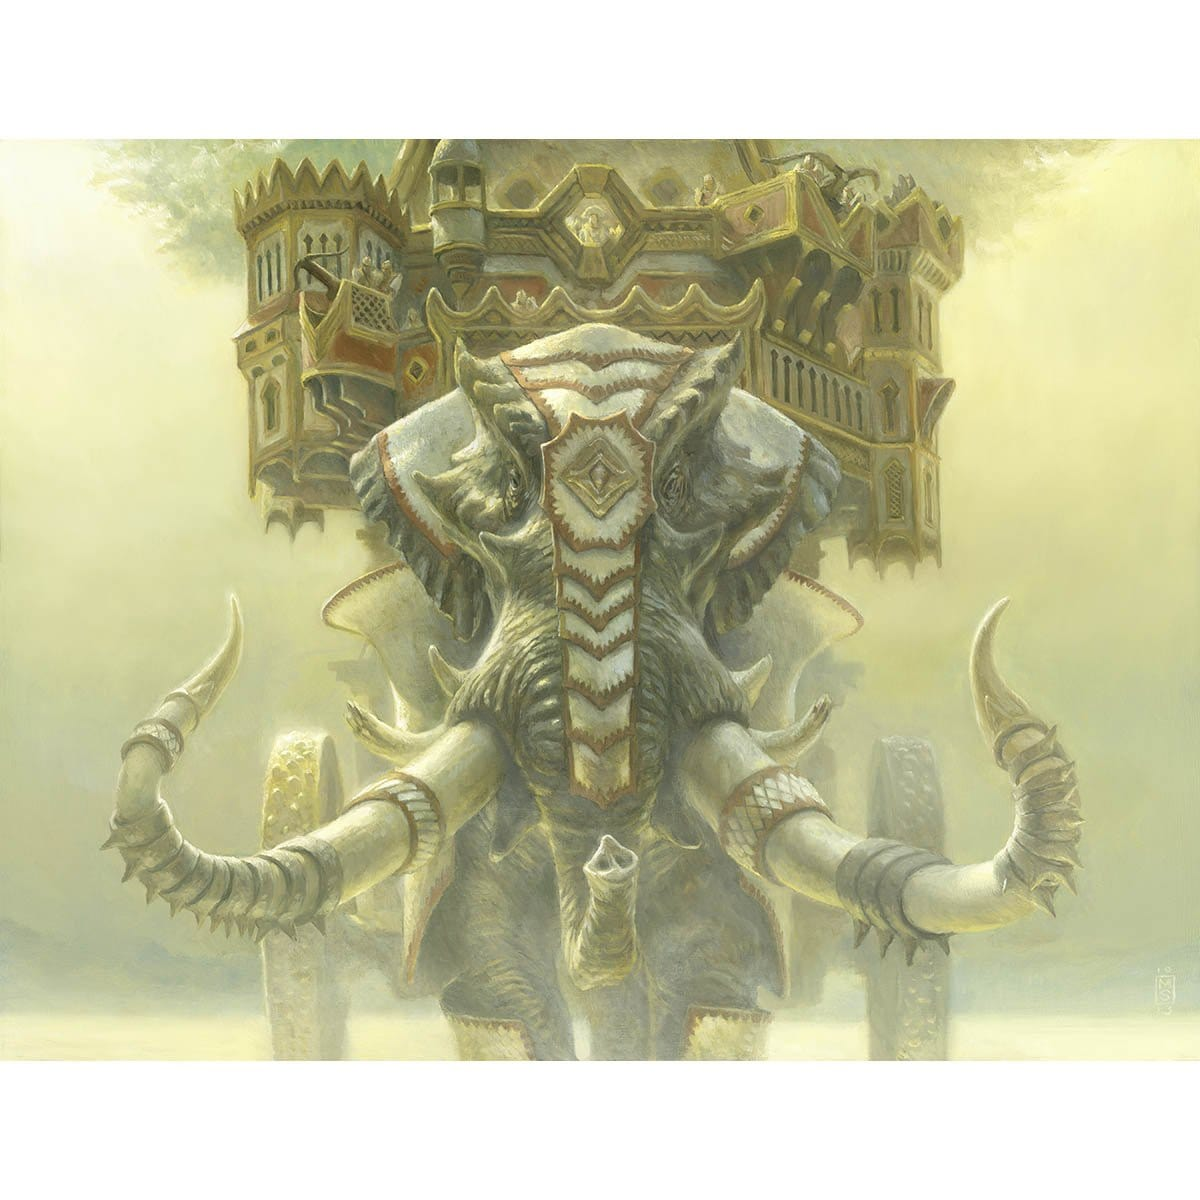 Ivorytusk Fortress Print - Print - Original Magic Art - Accessories for Magic the Gathering and other card games